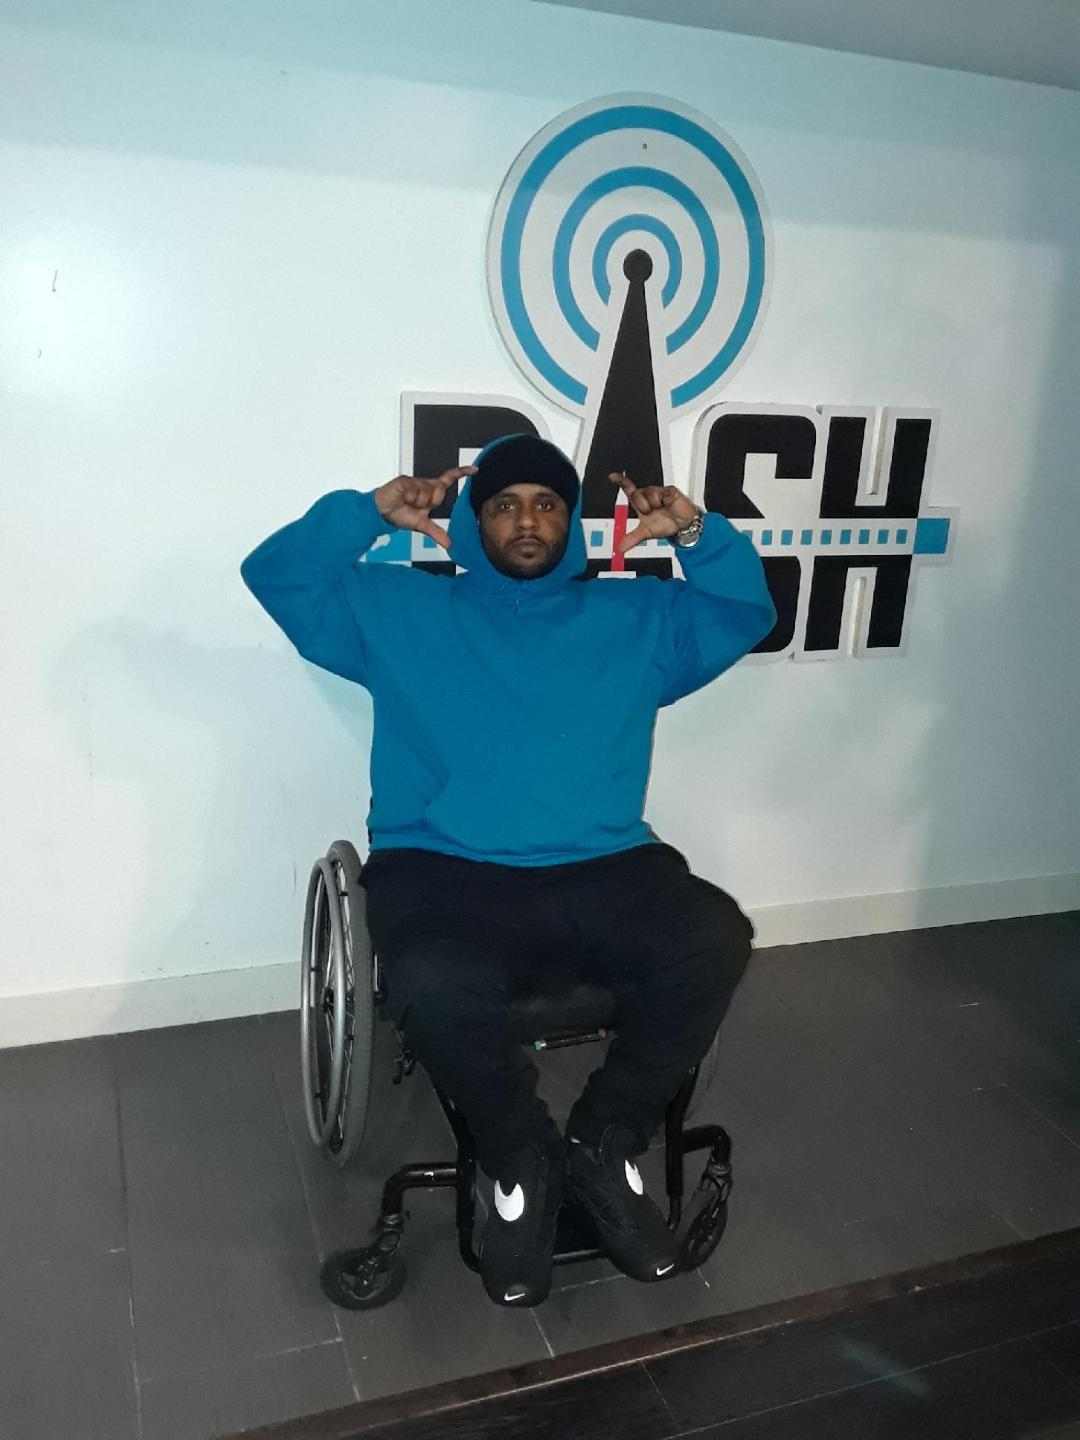 <p>Despite being shot and paralyzed 15 years ago, rapper August Bleu refuses to let that harrowing event define him. (Courtesy of August Bleu)</p>